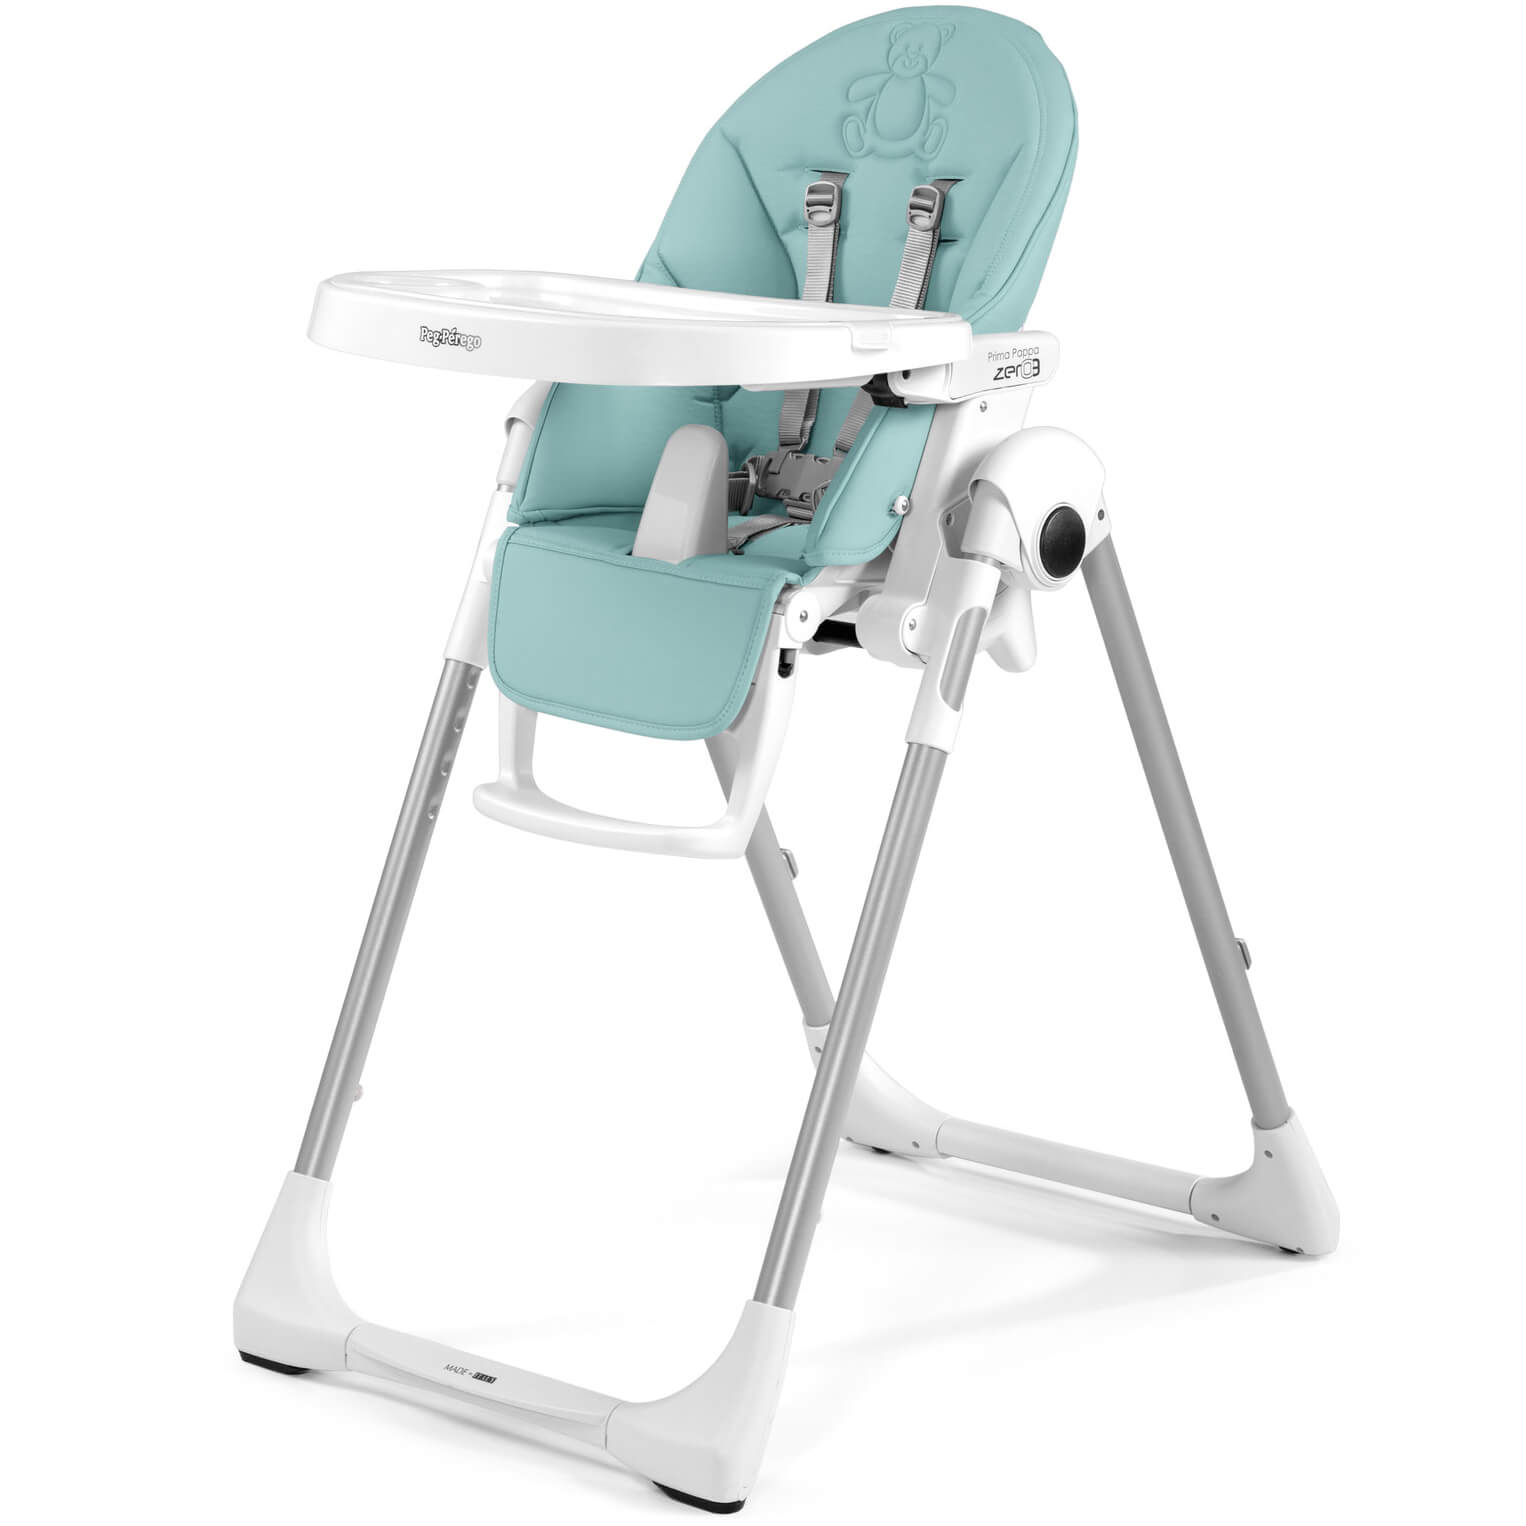 Perego High Chair Peg Perego Prima Pappa Zero3 Bear Azul Imitation Leather High Chair Cradle And Chair